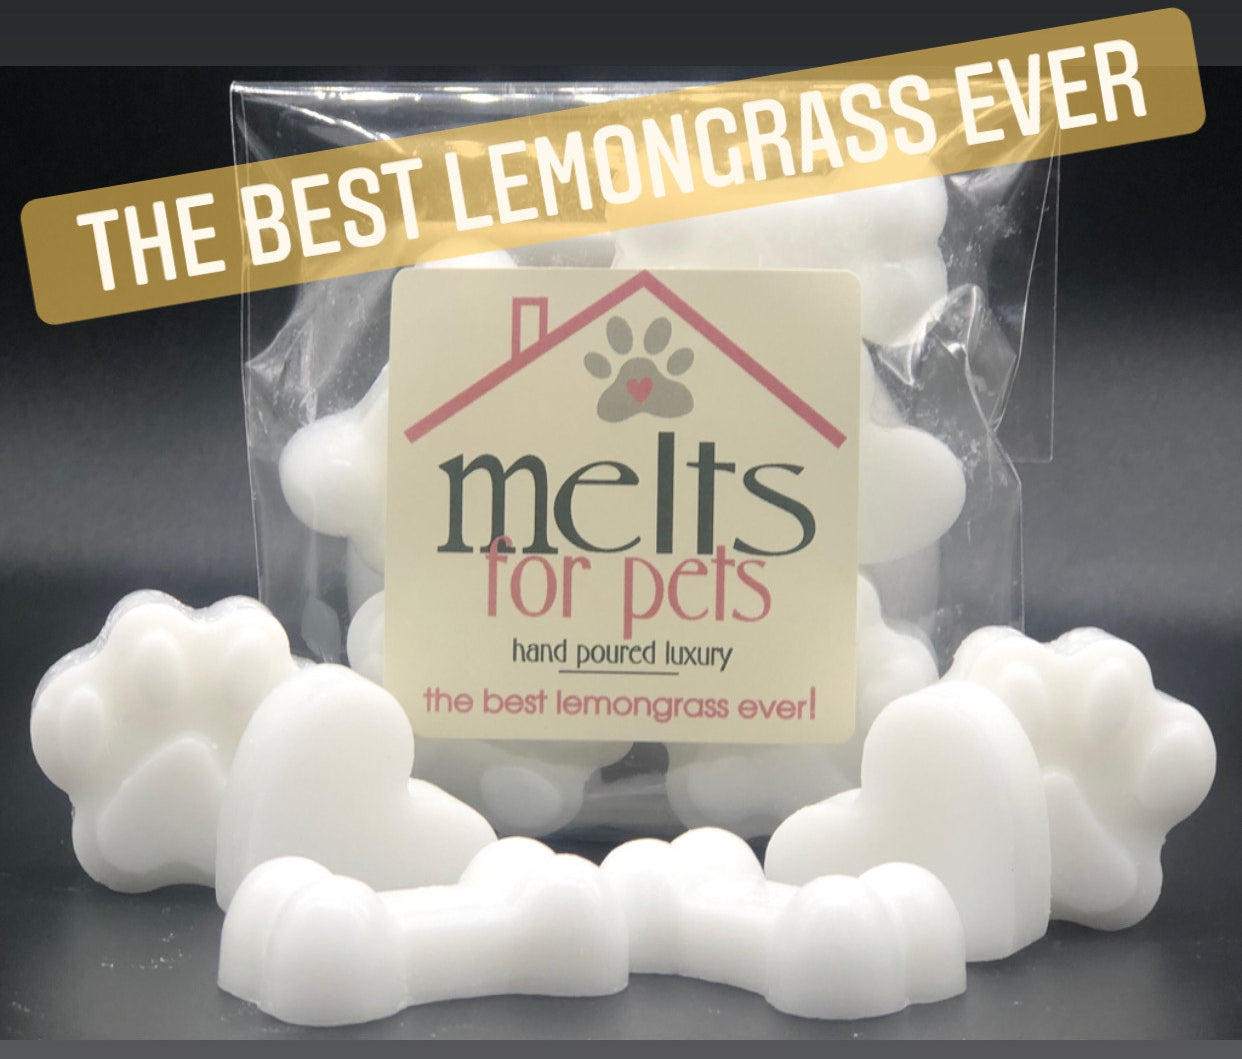 the best lemongrass ever! luxury pet friendly wax melts - pack of 6!